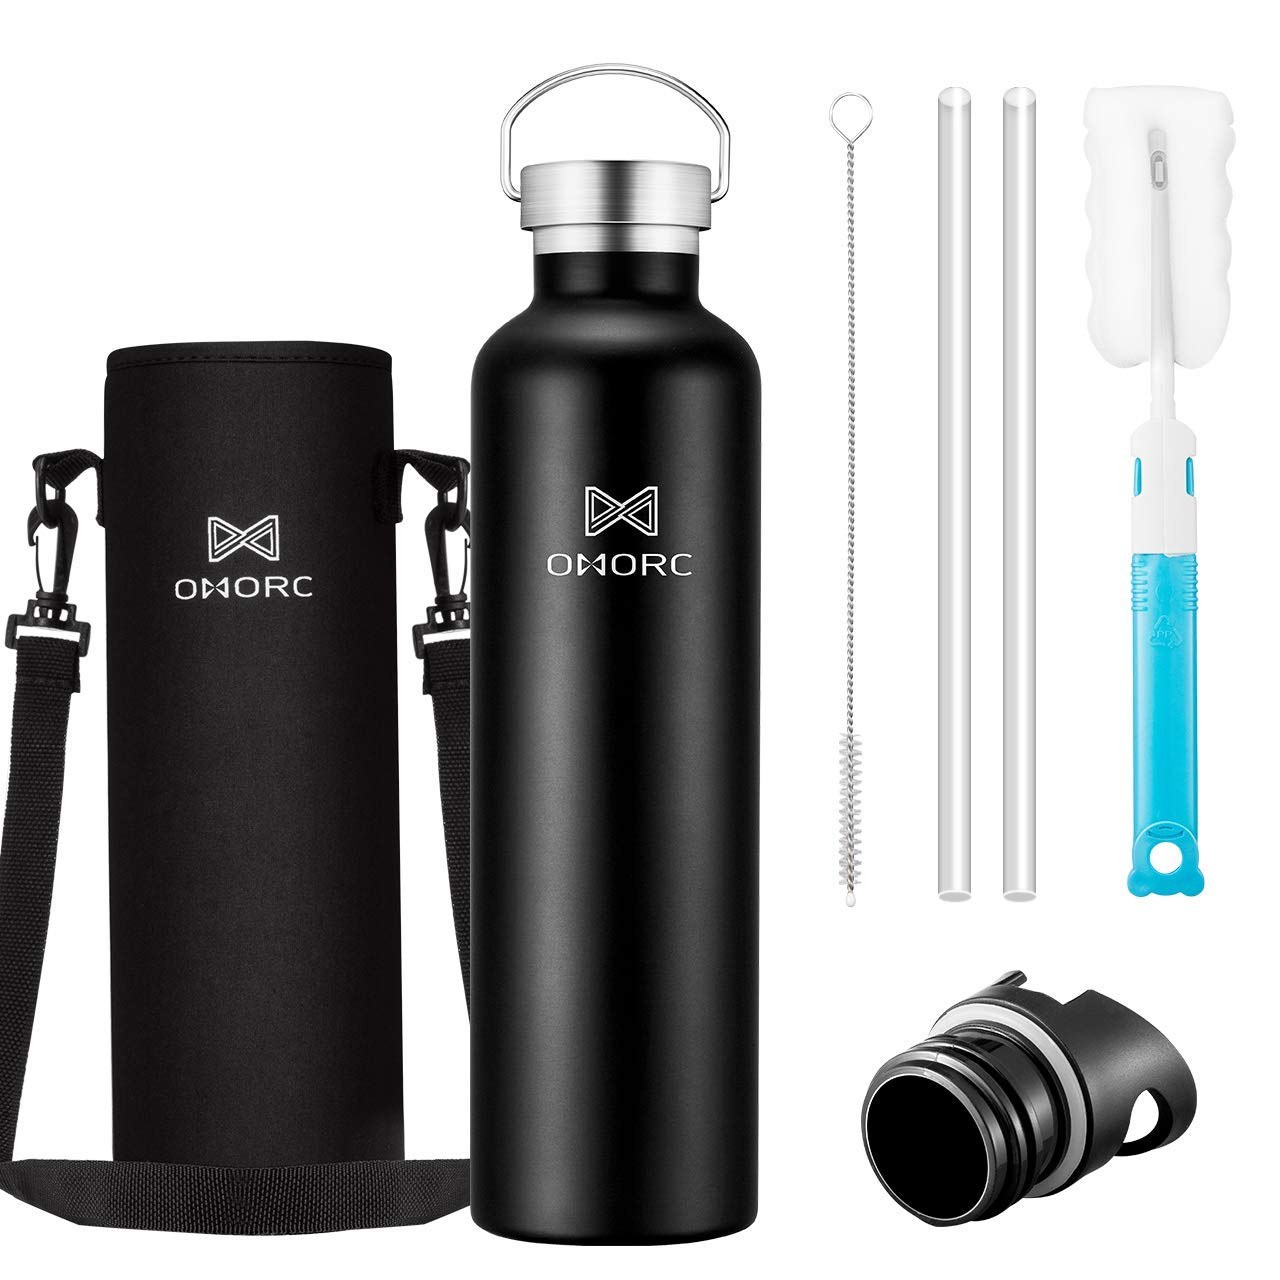 OMORC 316 Stainless Steel Sports Water Bottle-20oz,34oz, Double Wall Vacuum Insulated Water Bottle, Straw and 2 Lids, Wide Mouth,Thermo Travel Modern Mug,Stay Cold for 48 Hrs,Hot for 24 Hrs,BPA Free by OMORC